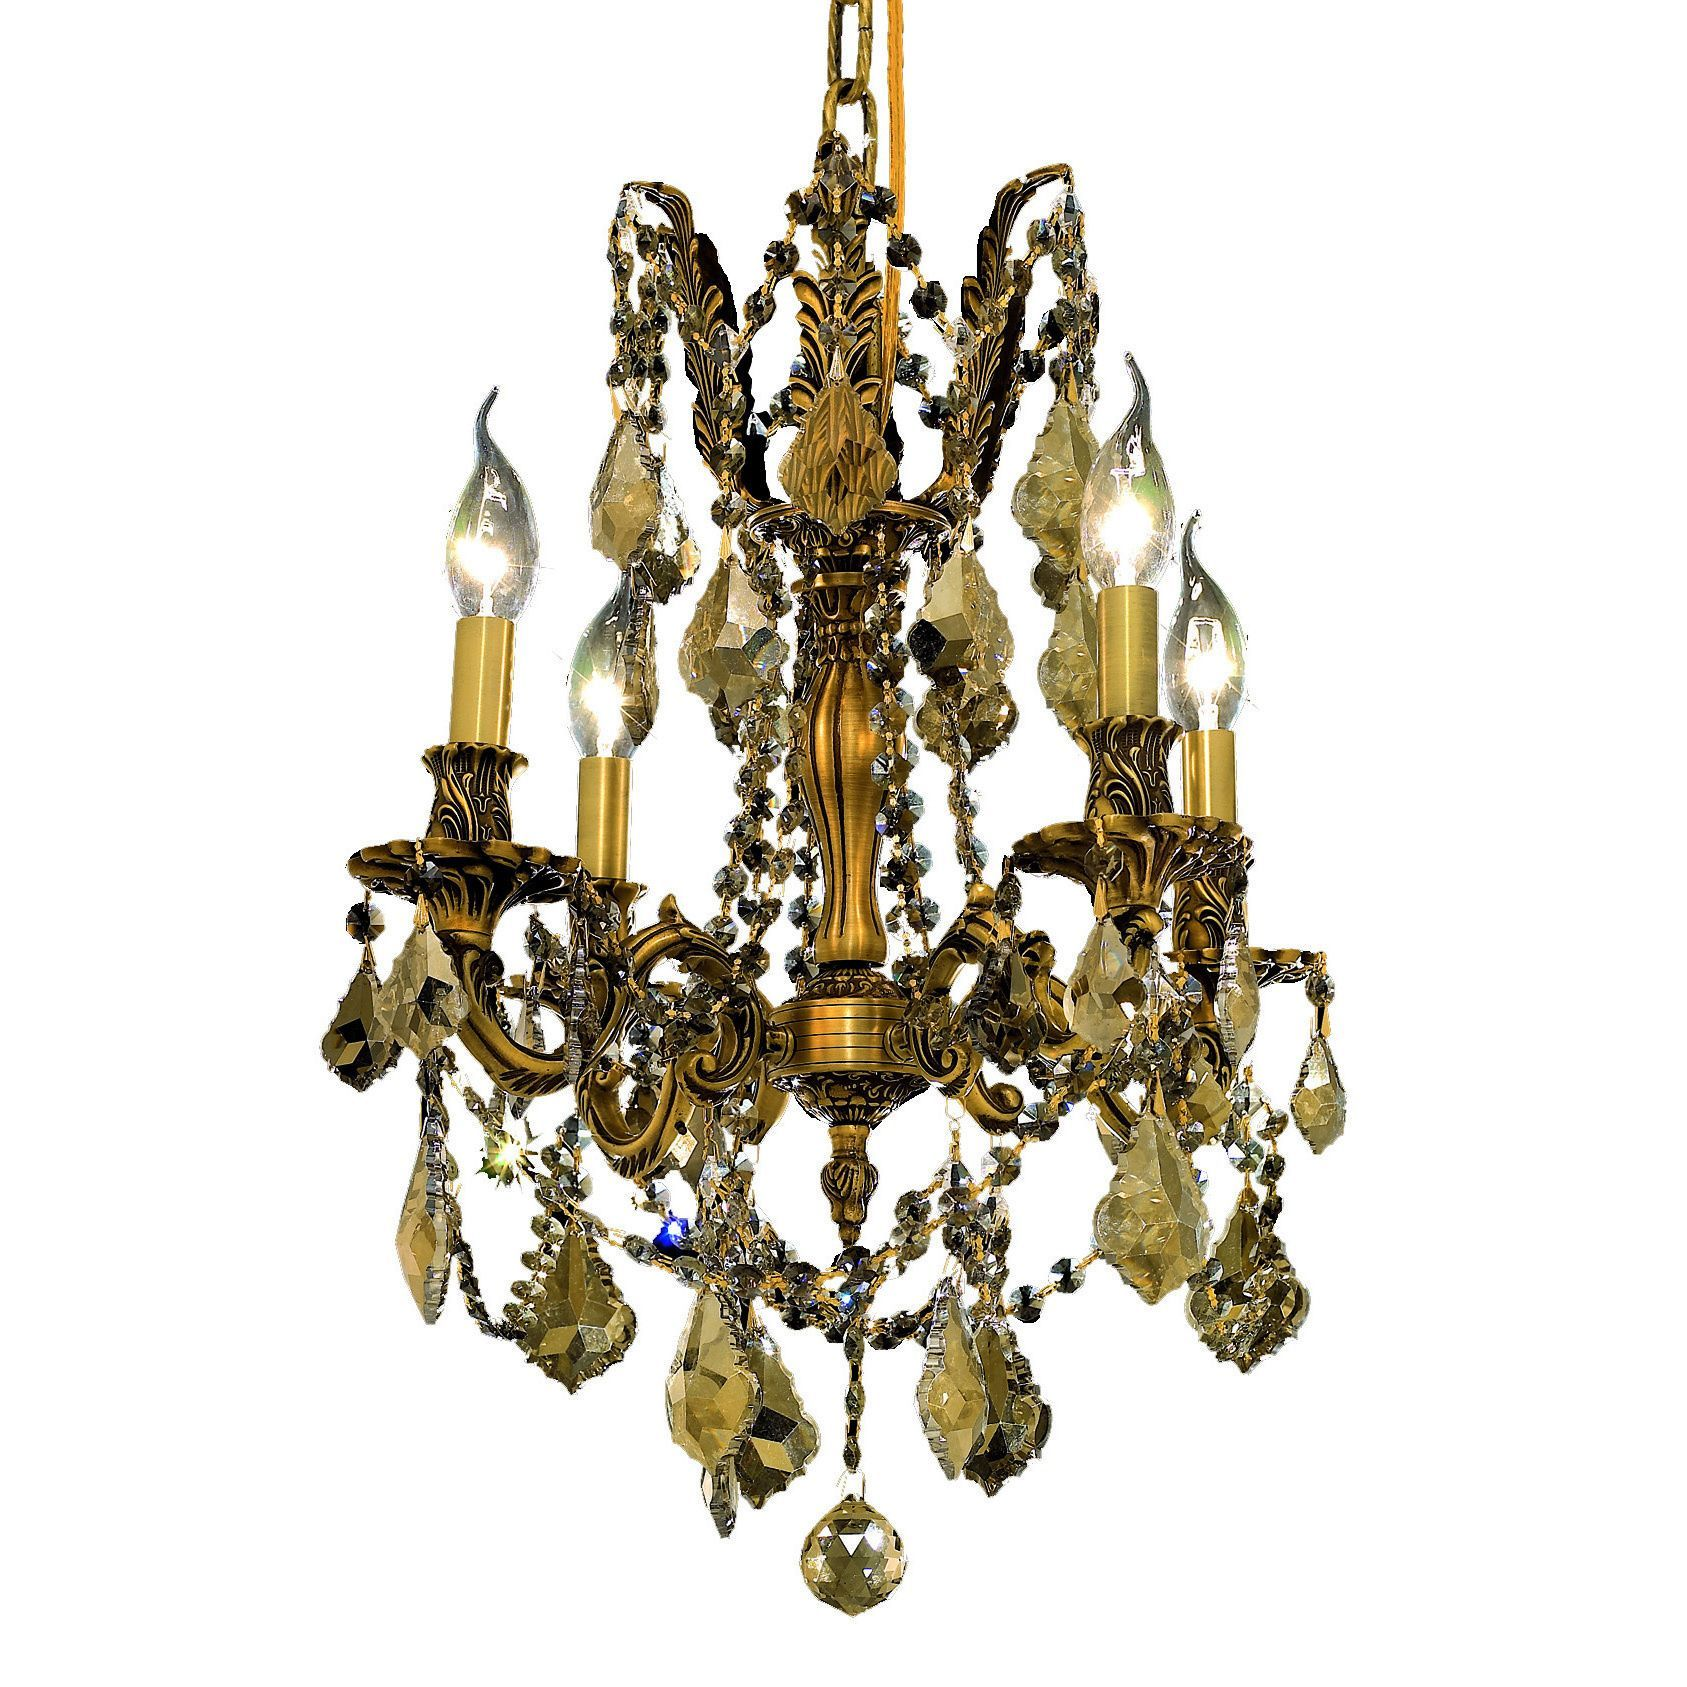 Somette zurich 4 light royal cut gold crystal and french gold shop for somette zurich royal cut gold crystal and french gold chandelier get free shipping at your online home decor outlet store arubaitofo Image collections